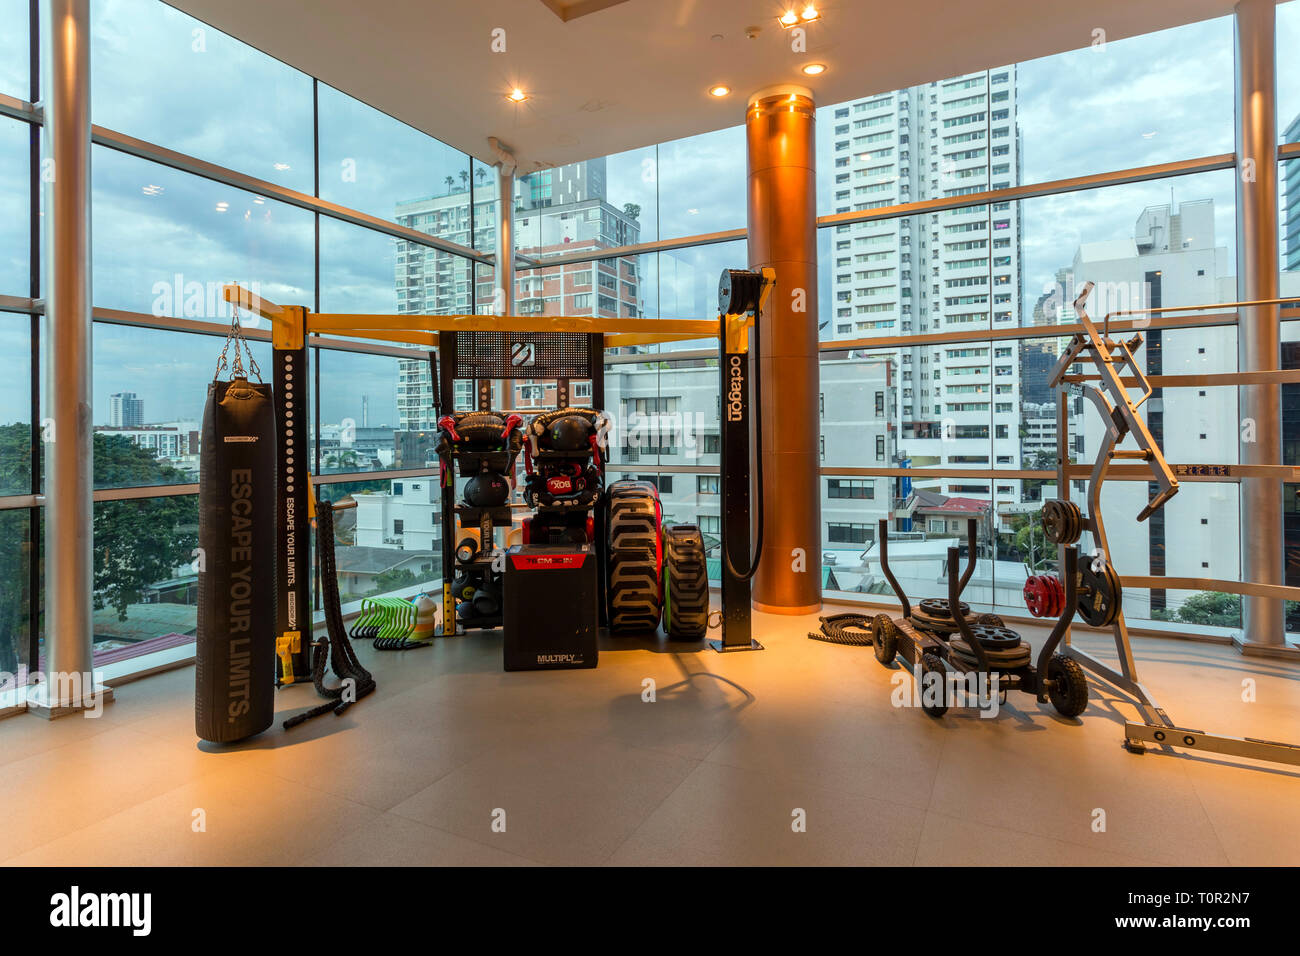 Interior de Cascade Club y Spa health club fitness center situado en Bangkok, Tailandia. Imagen De Stock